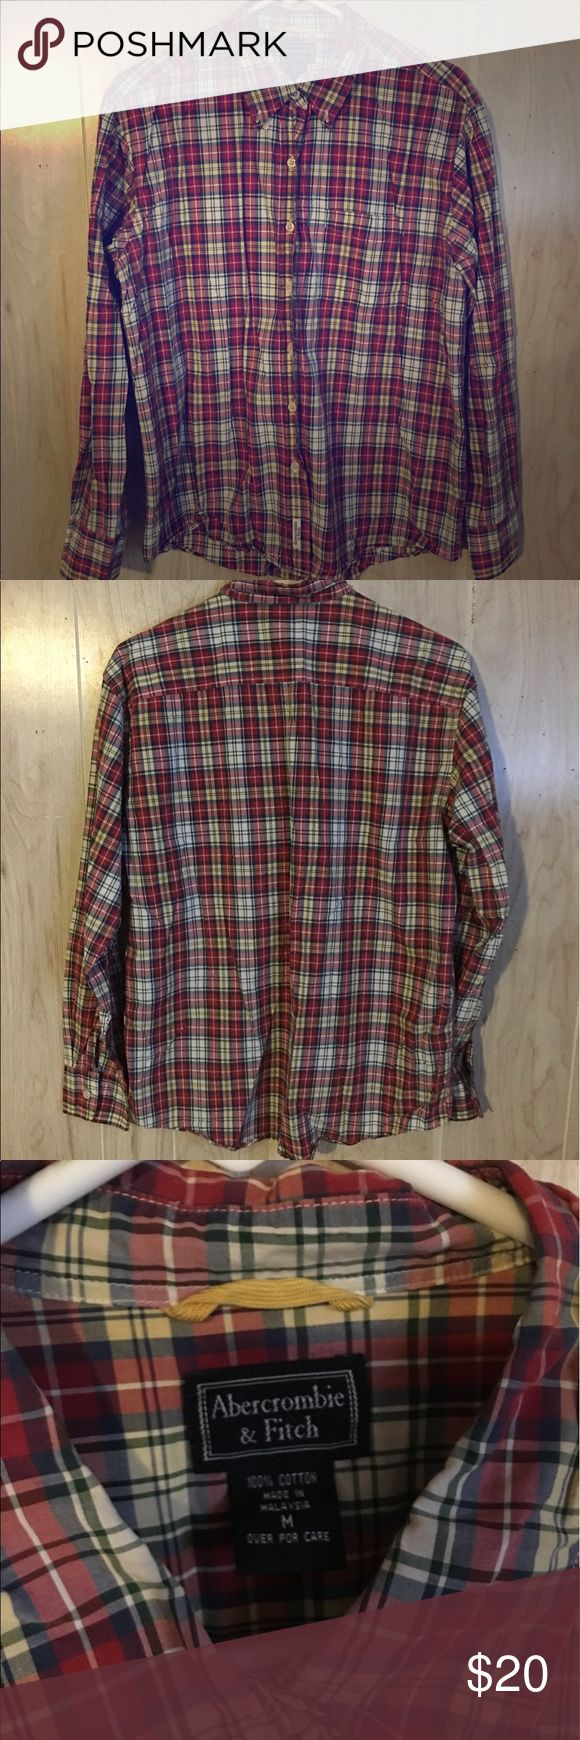 Abercrombie & Fitch Plaid Shirt, Size Medium Abercrombie & Fitch plaid shirt. Size medium. Red, yellow, white, blue, and green in color. Gently used. Bundle to save! Abercrombie & Fitch Tops Button Down Shirts